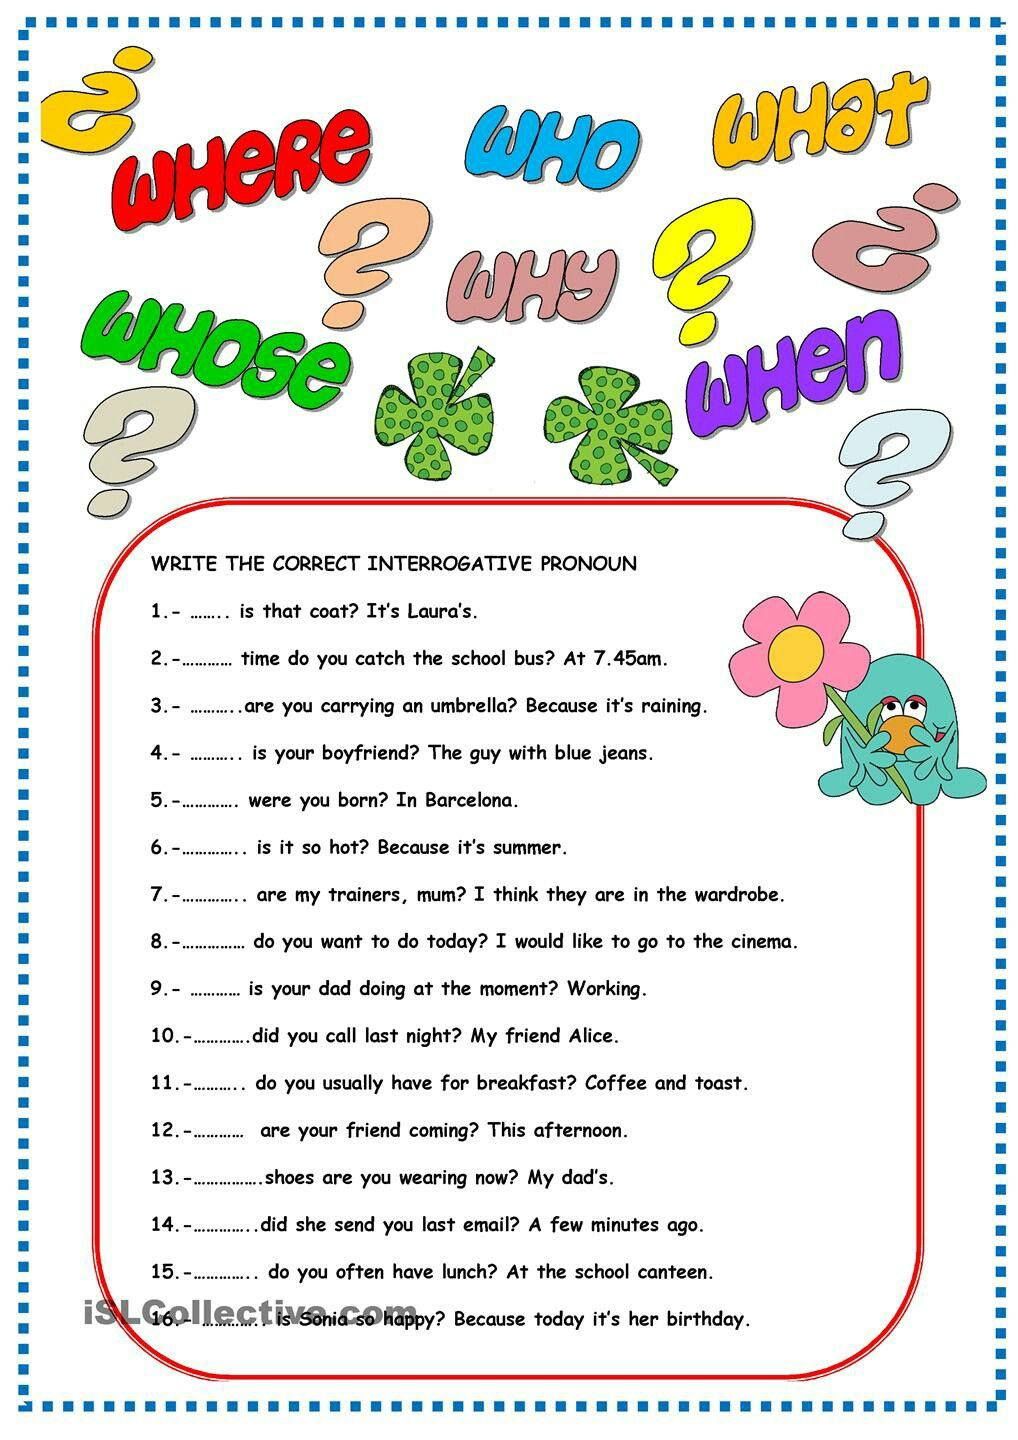 Interrogative Pronouns Pronoun worksheets, Interrogative